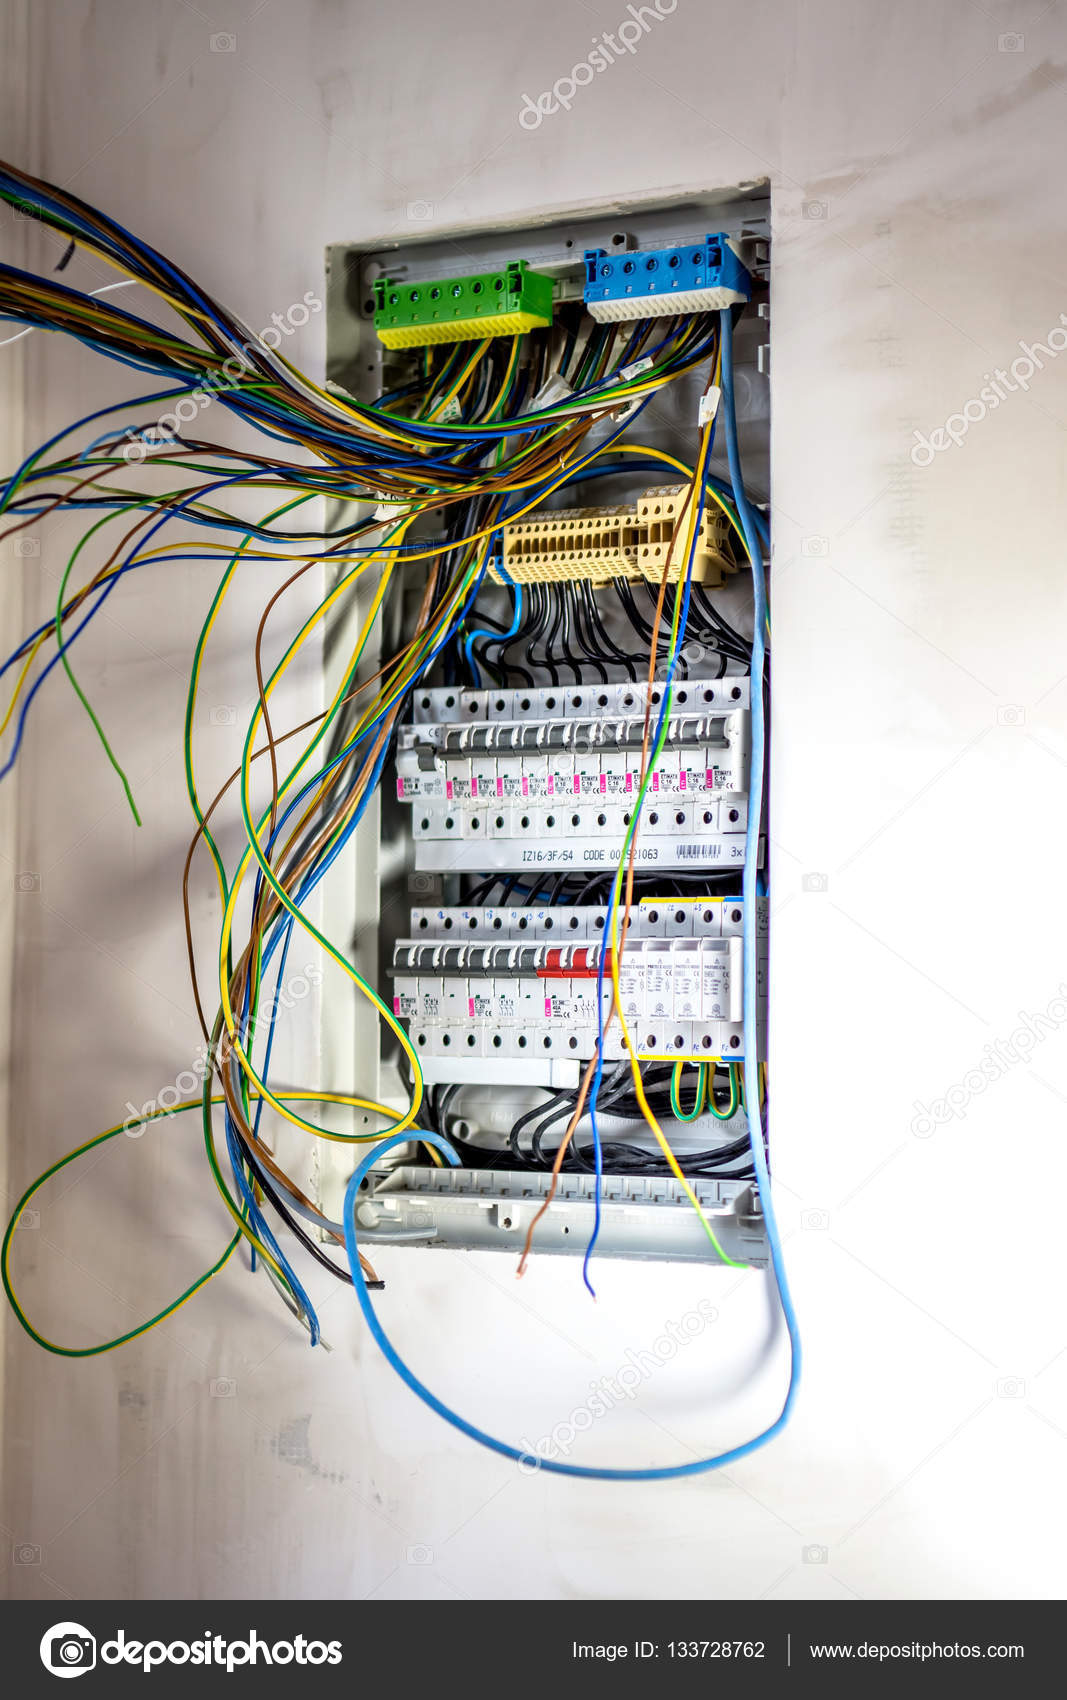 hight resolution of electrician fixing electric panel stock photo automatic fuse switches circuit breaker and wiring terminal in cabine photo by fotovincek